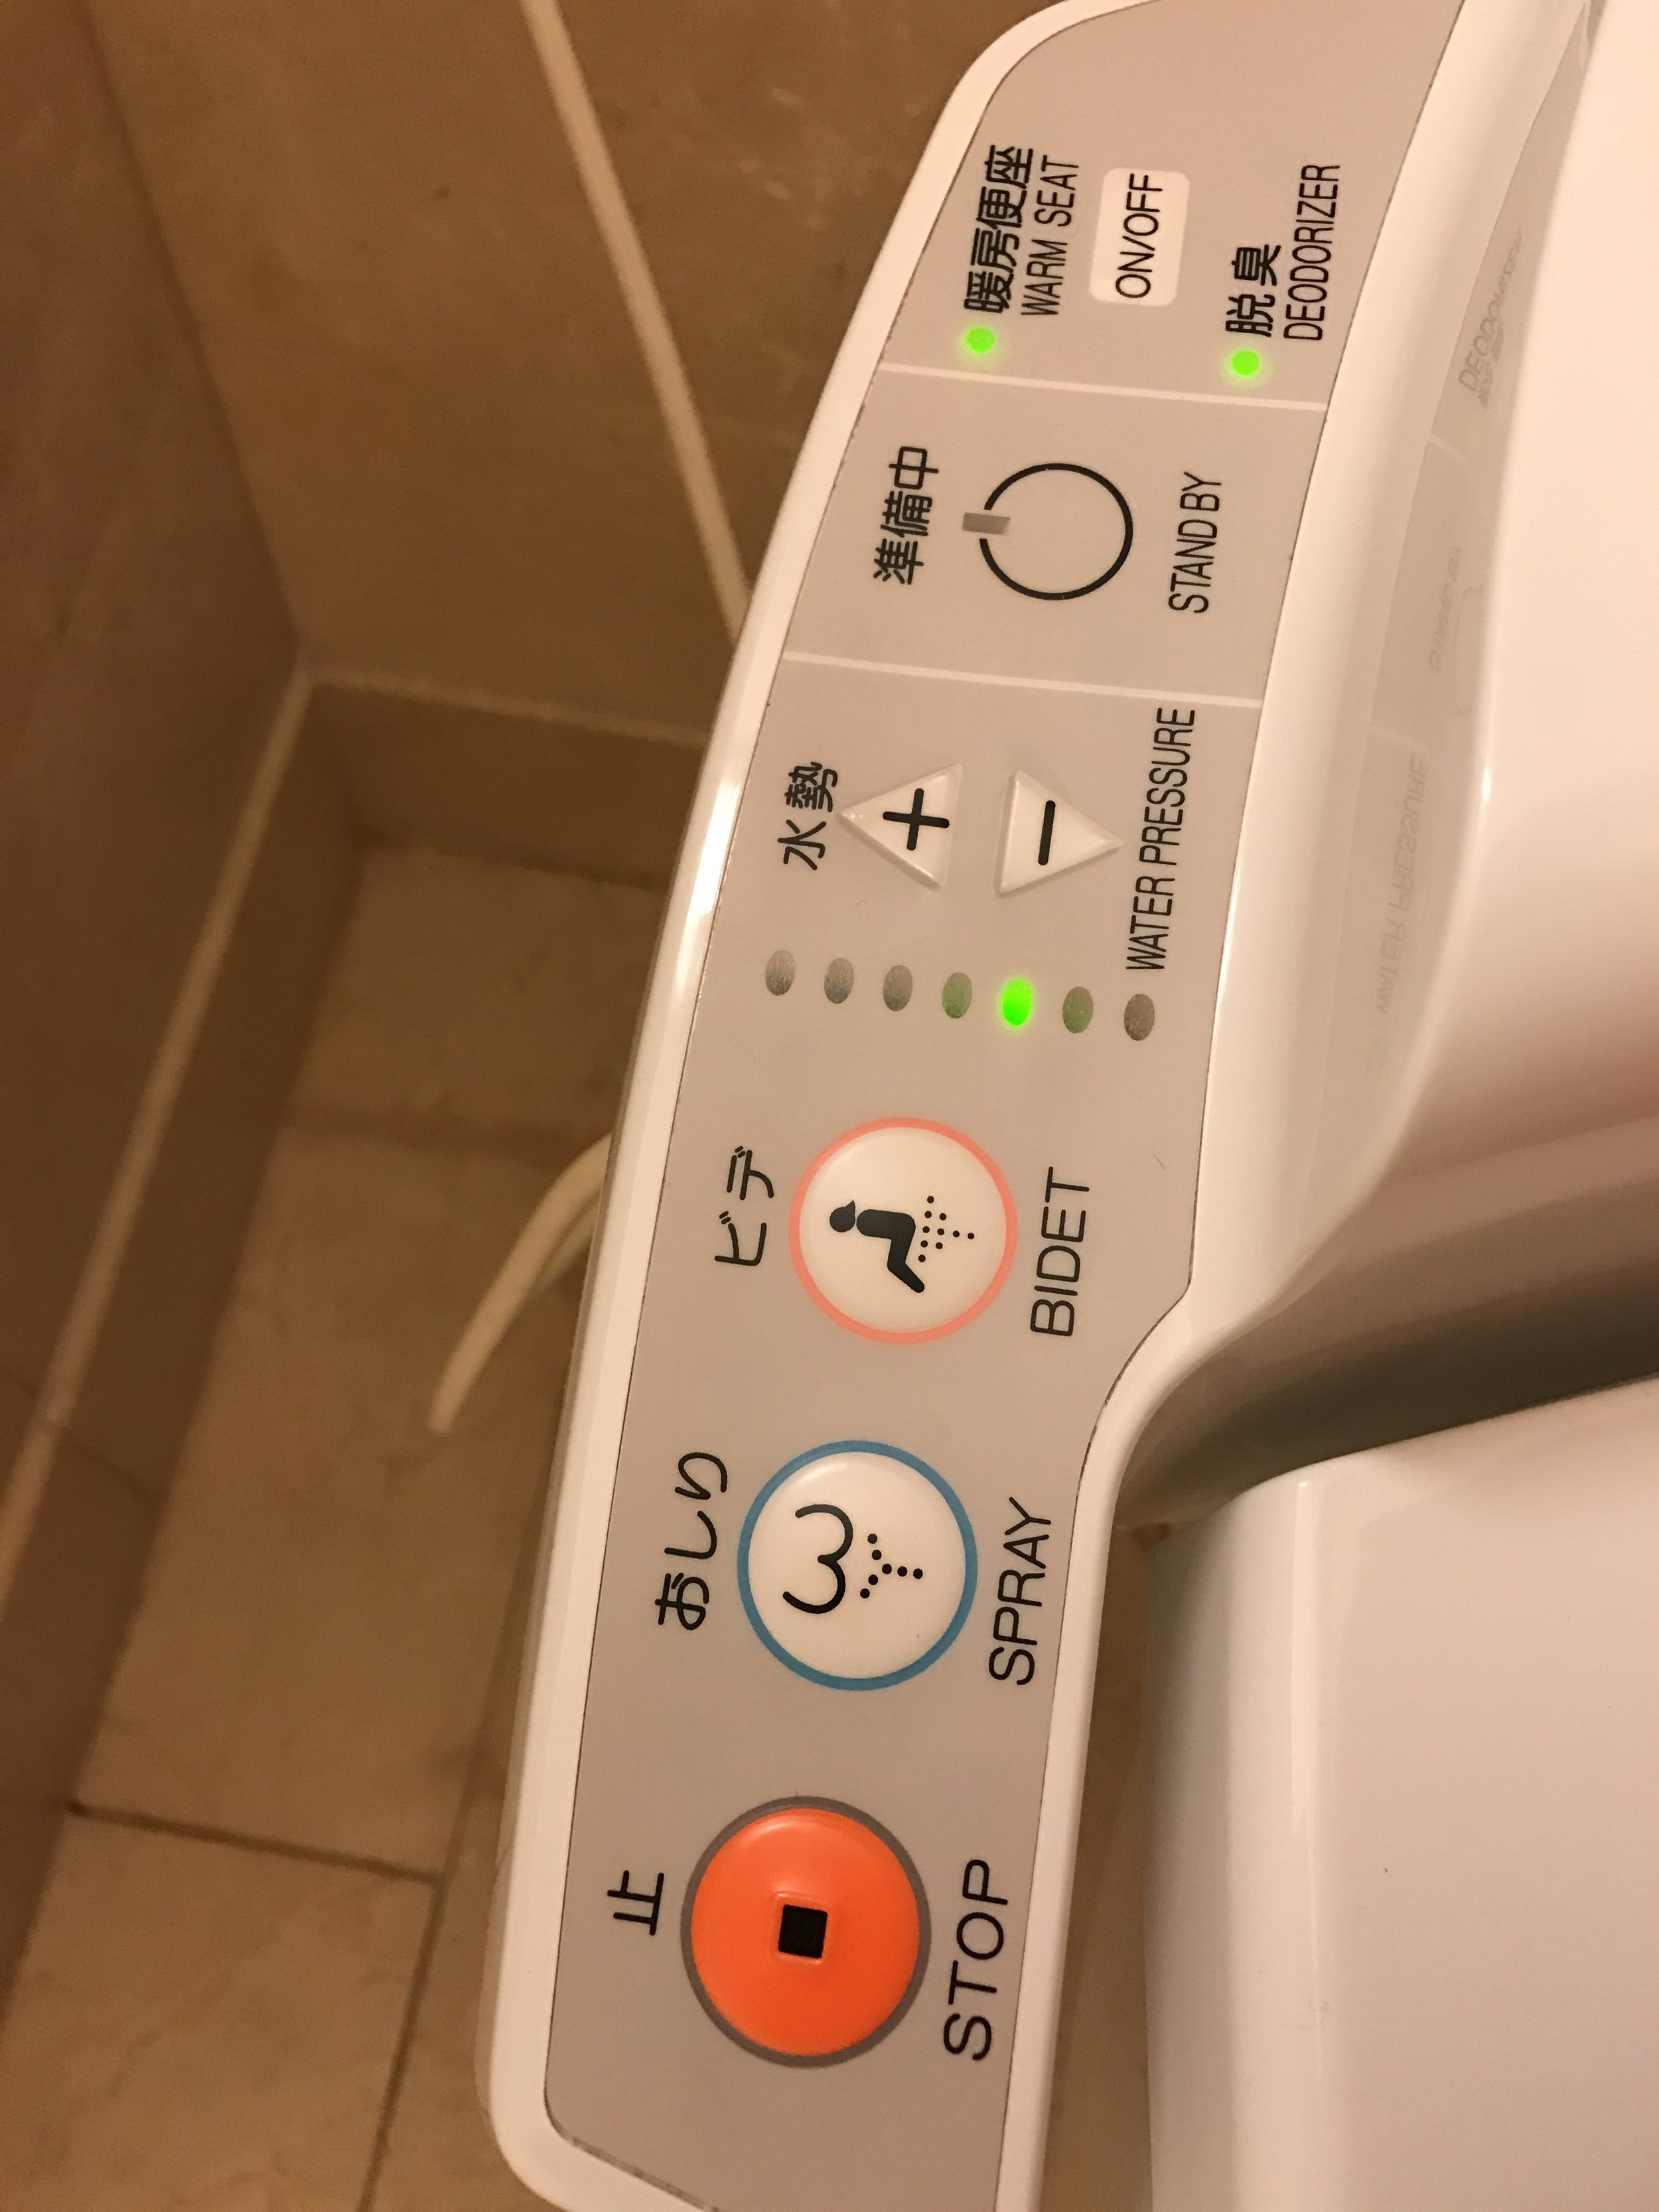 Close up of the bidet features with English